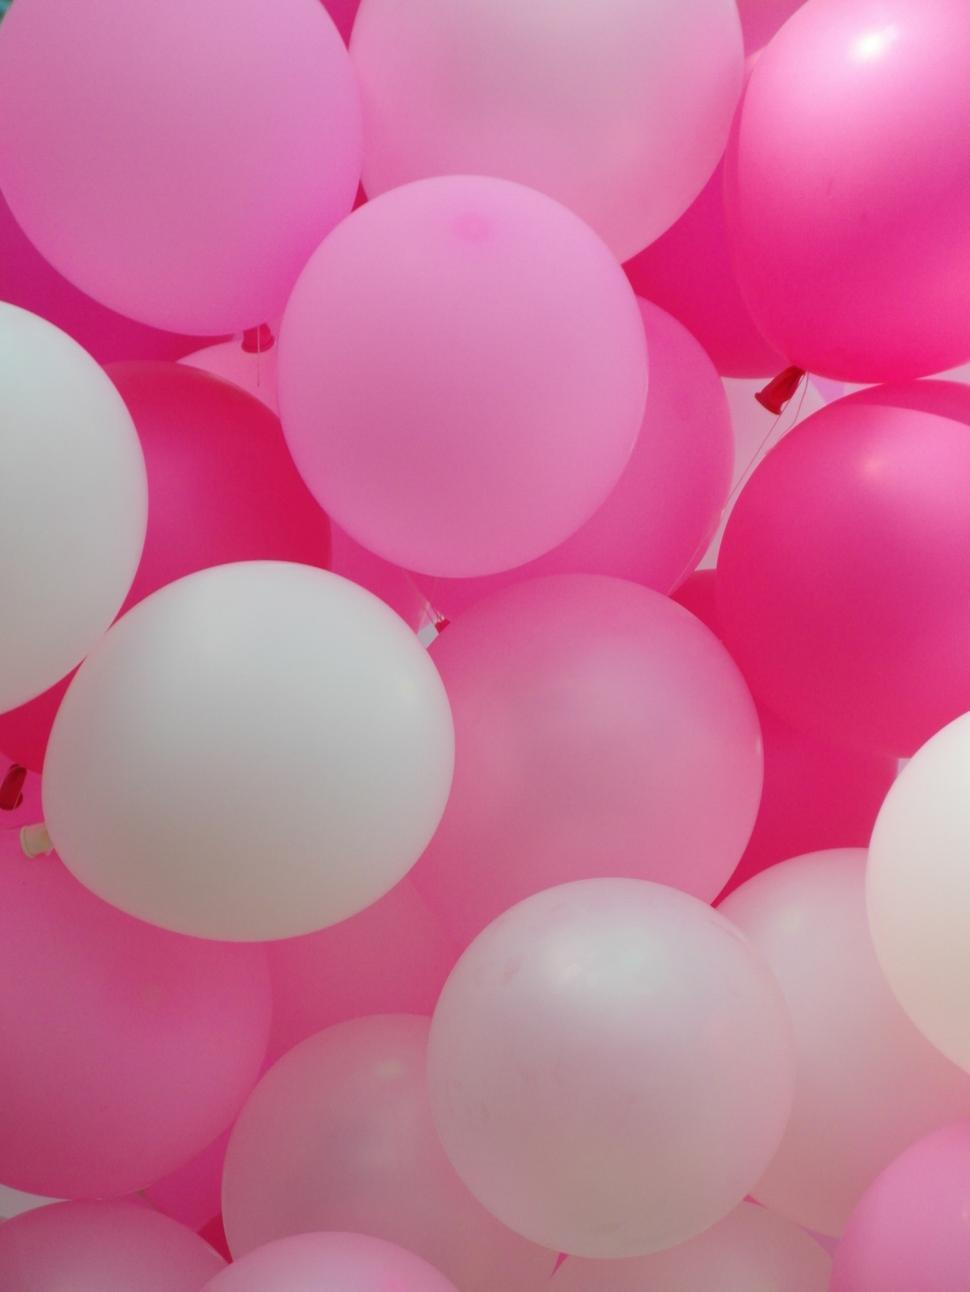 Download Free Stock Photo of Pink Balloons